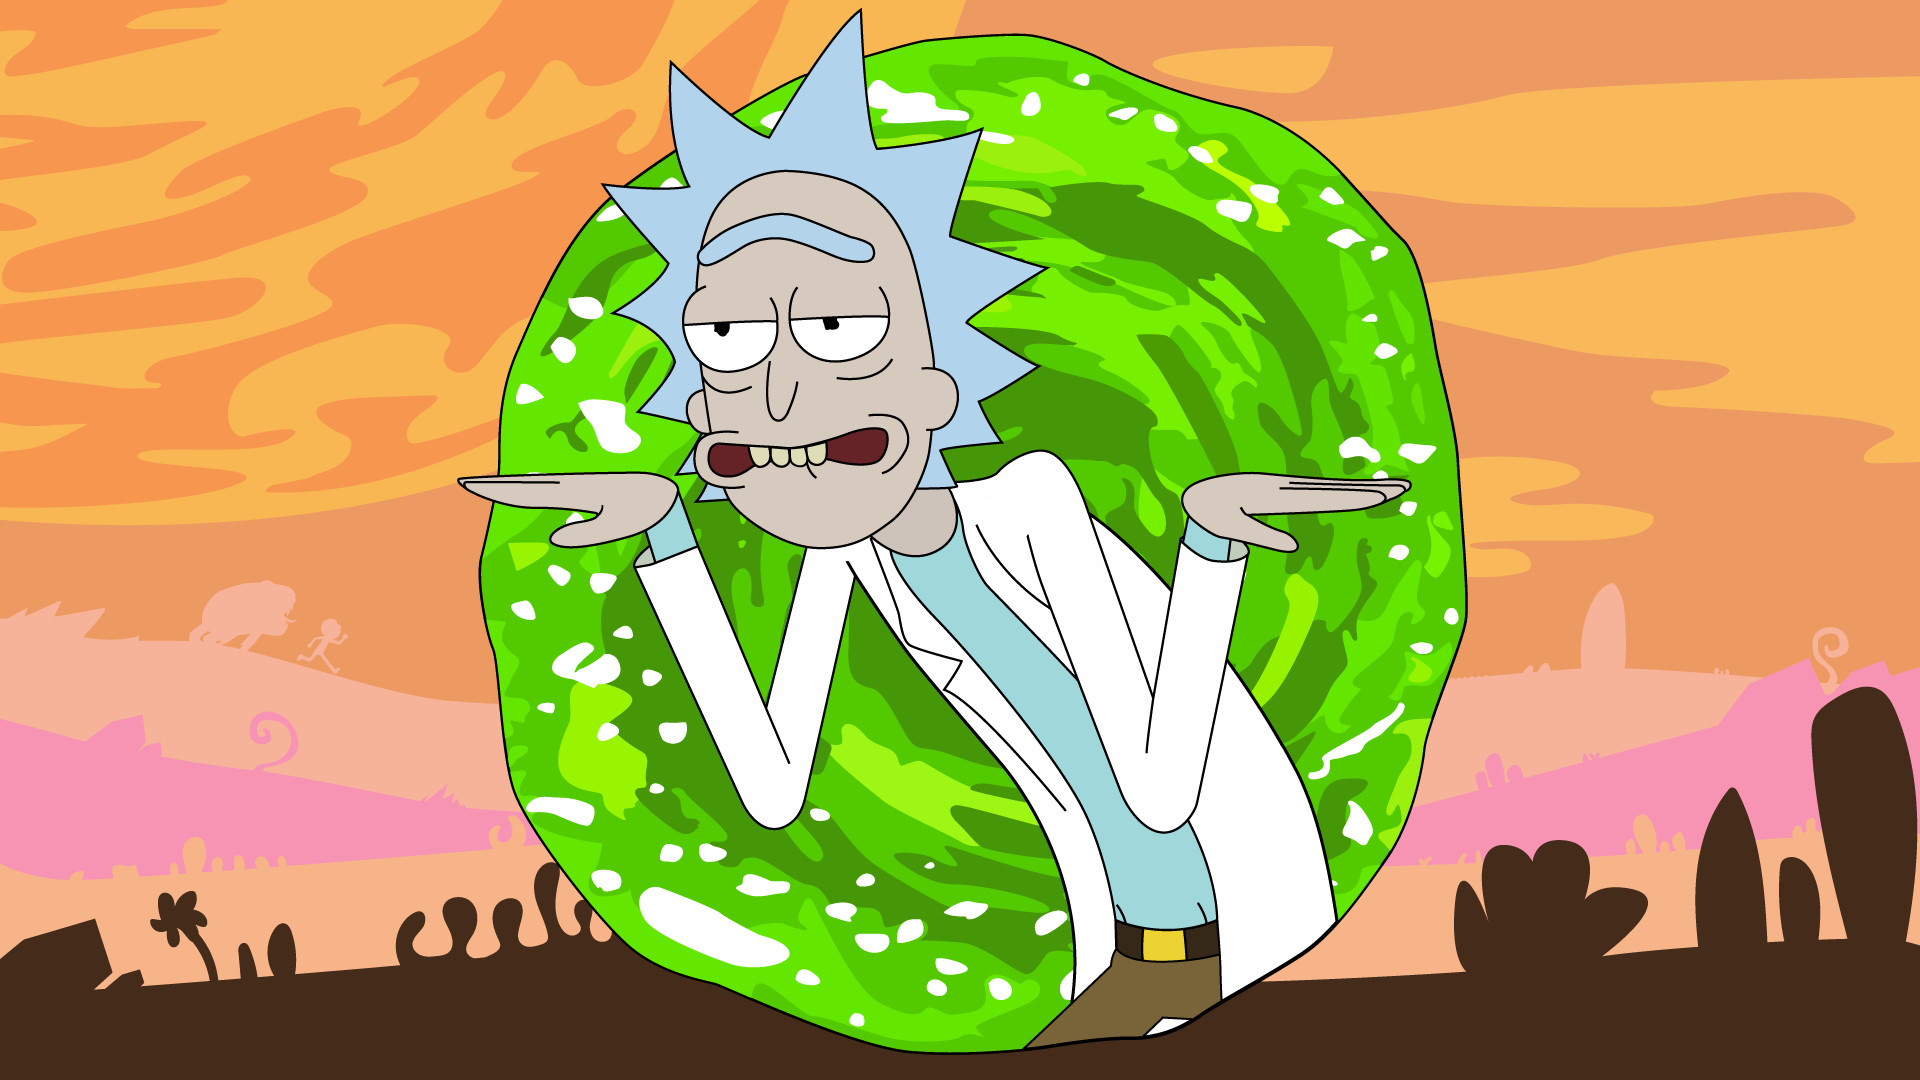 1920x1080 Rick and morty animated series wallpaper